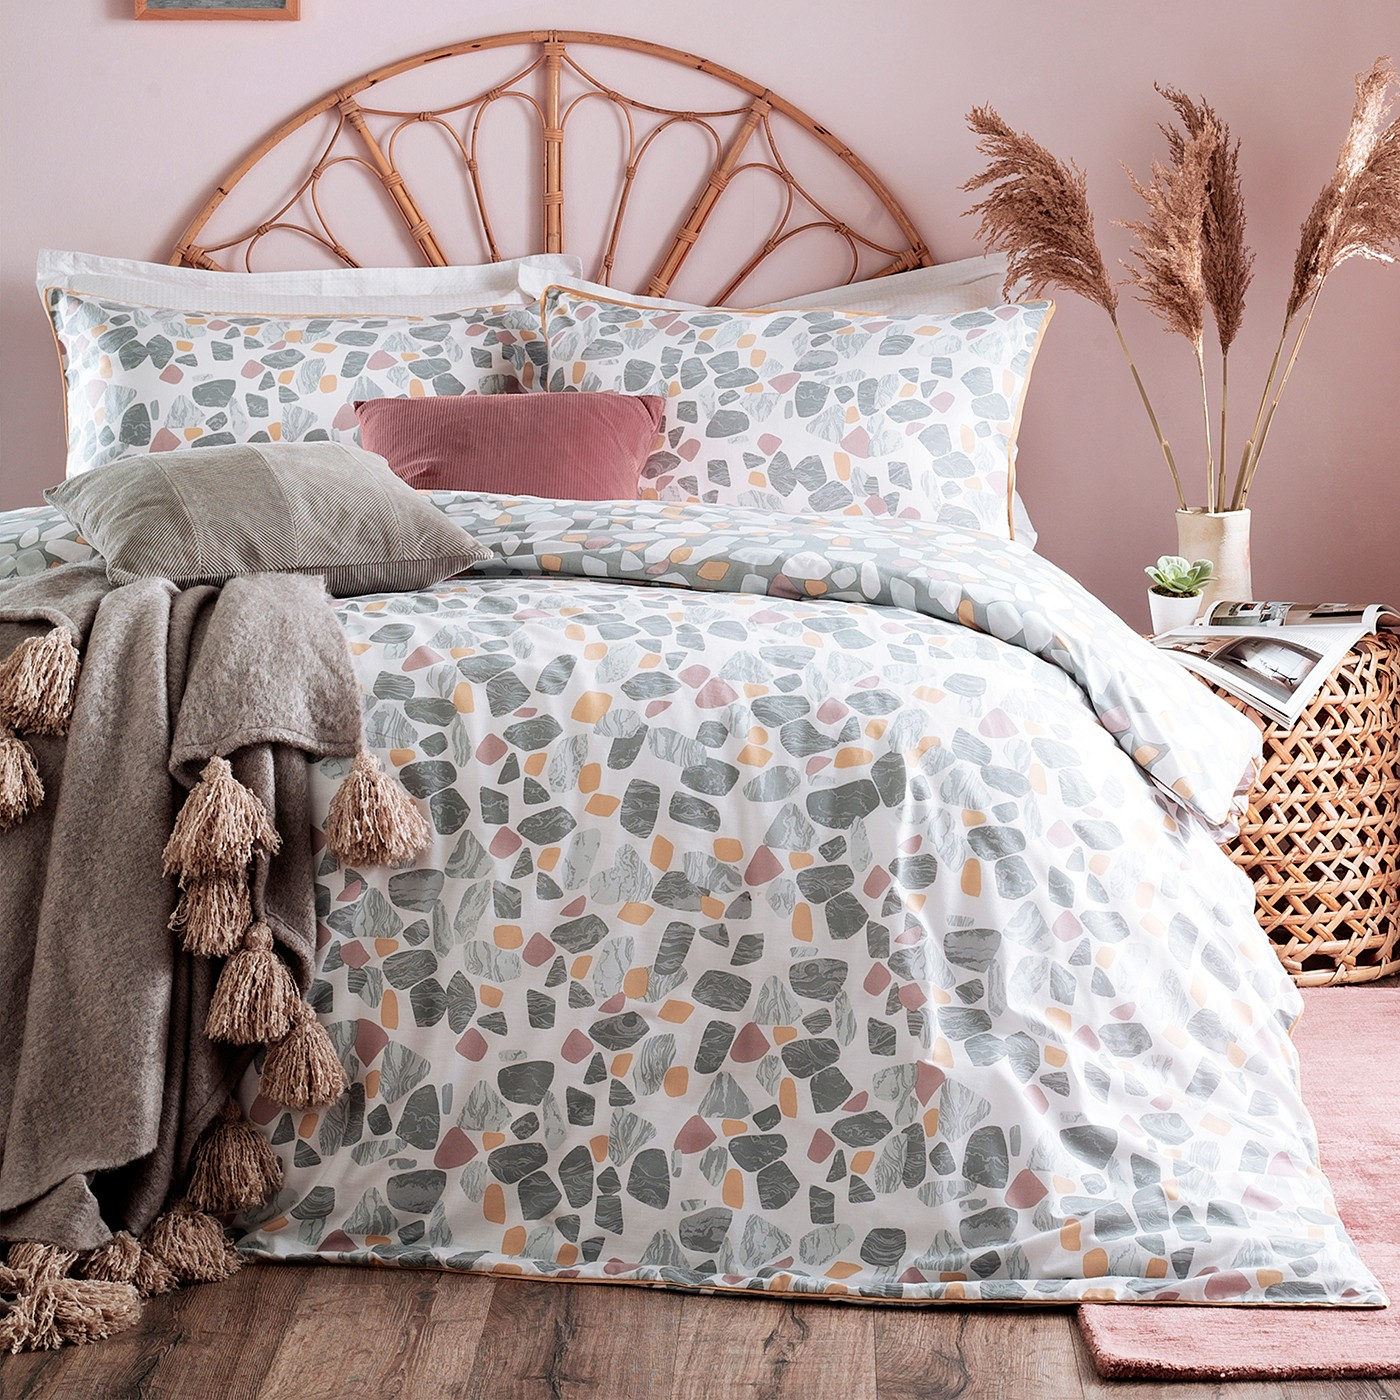 The Home Furnishings Company Terrazzo Blush/Ochre Duvet Cover and Matching Pillow Cases